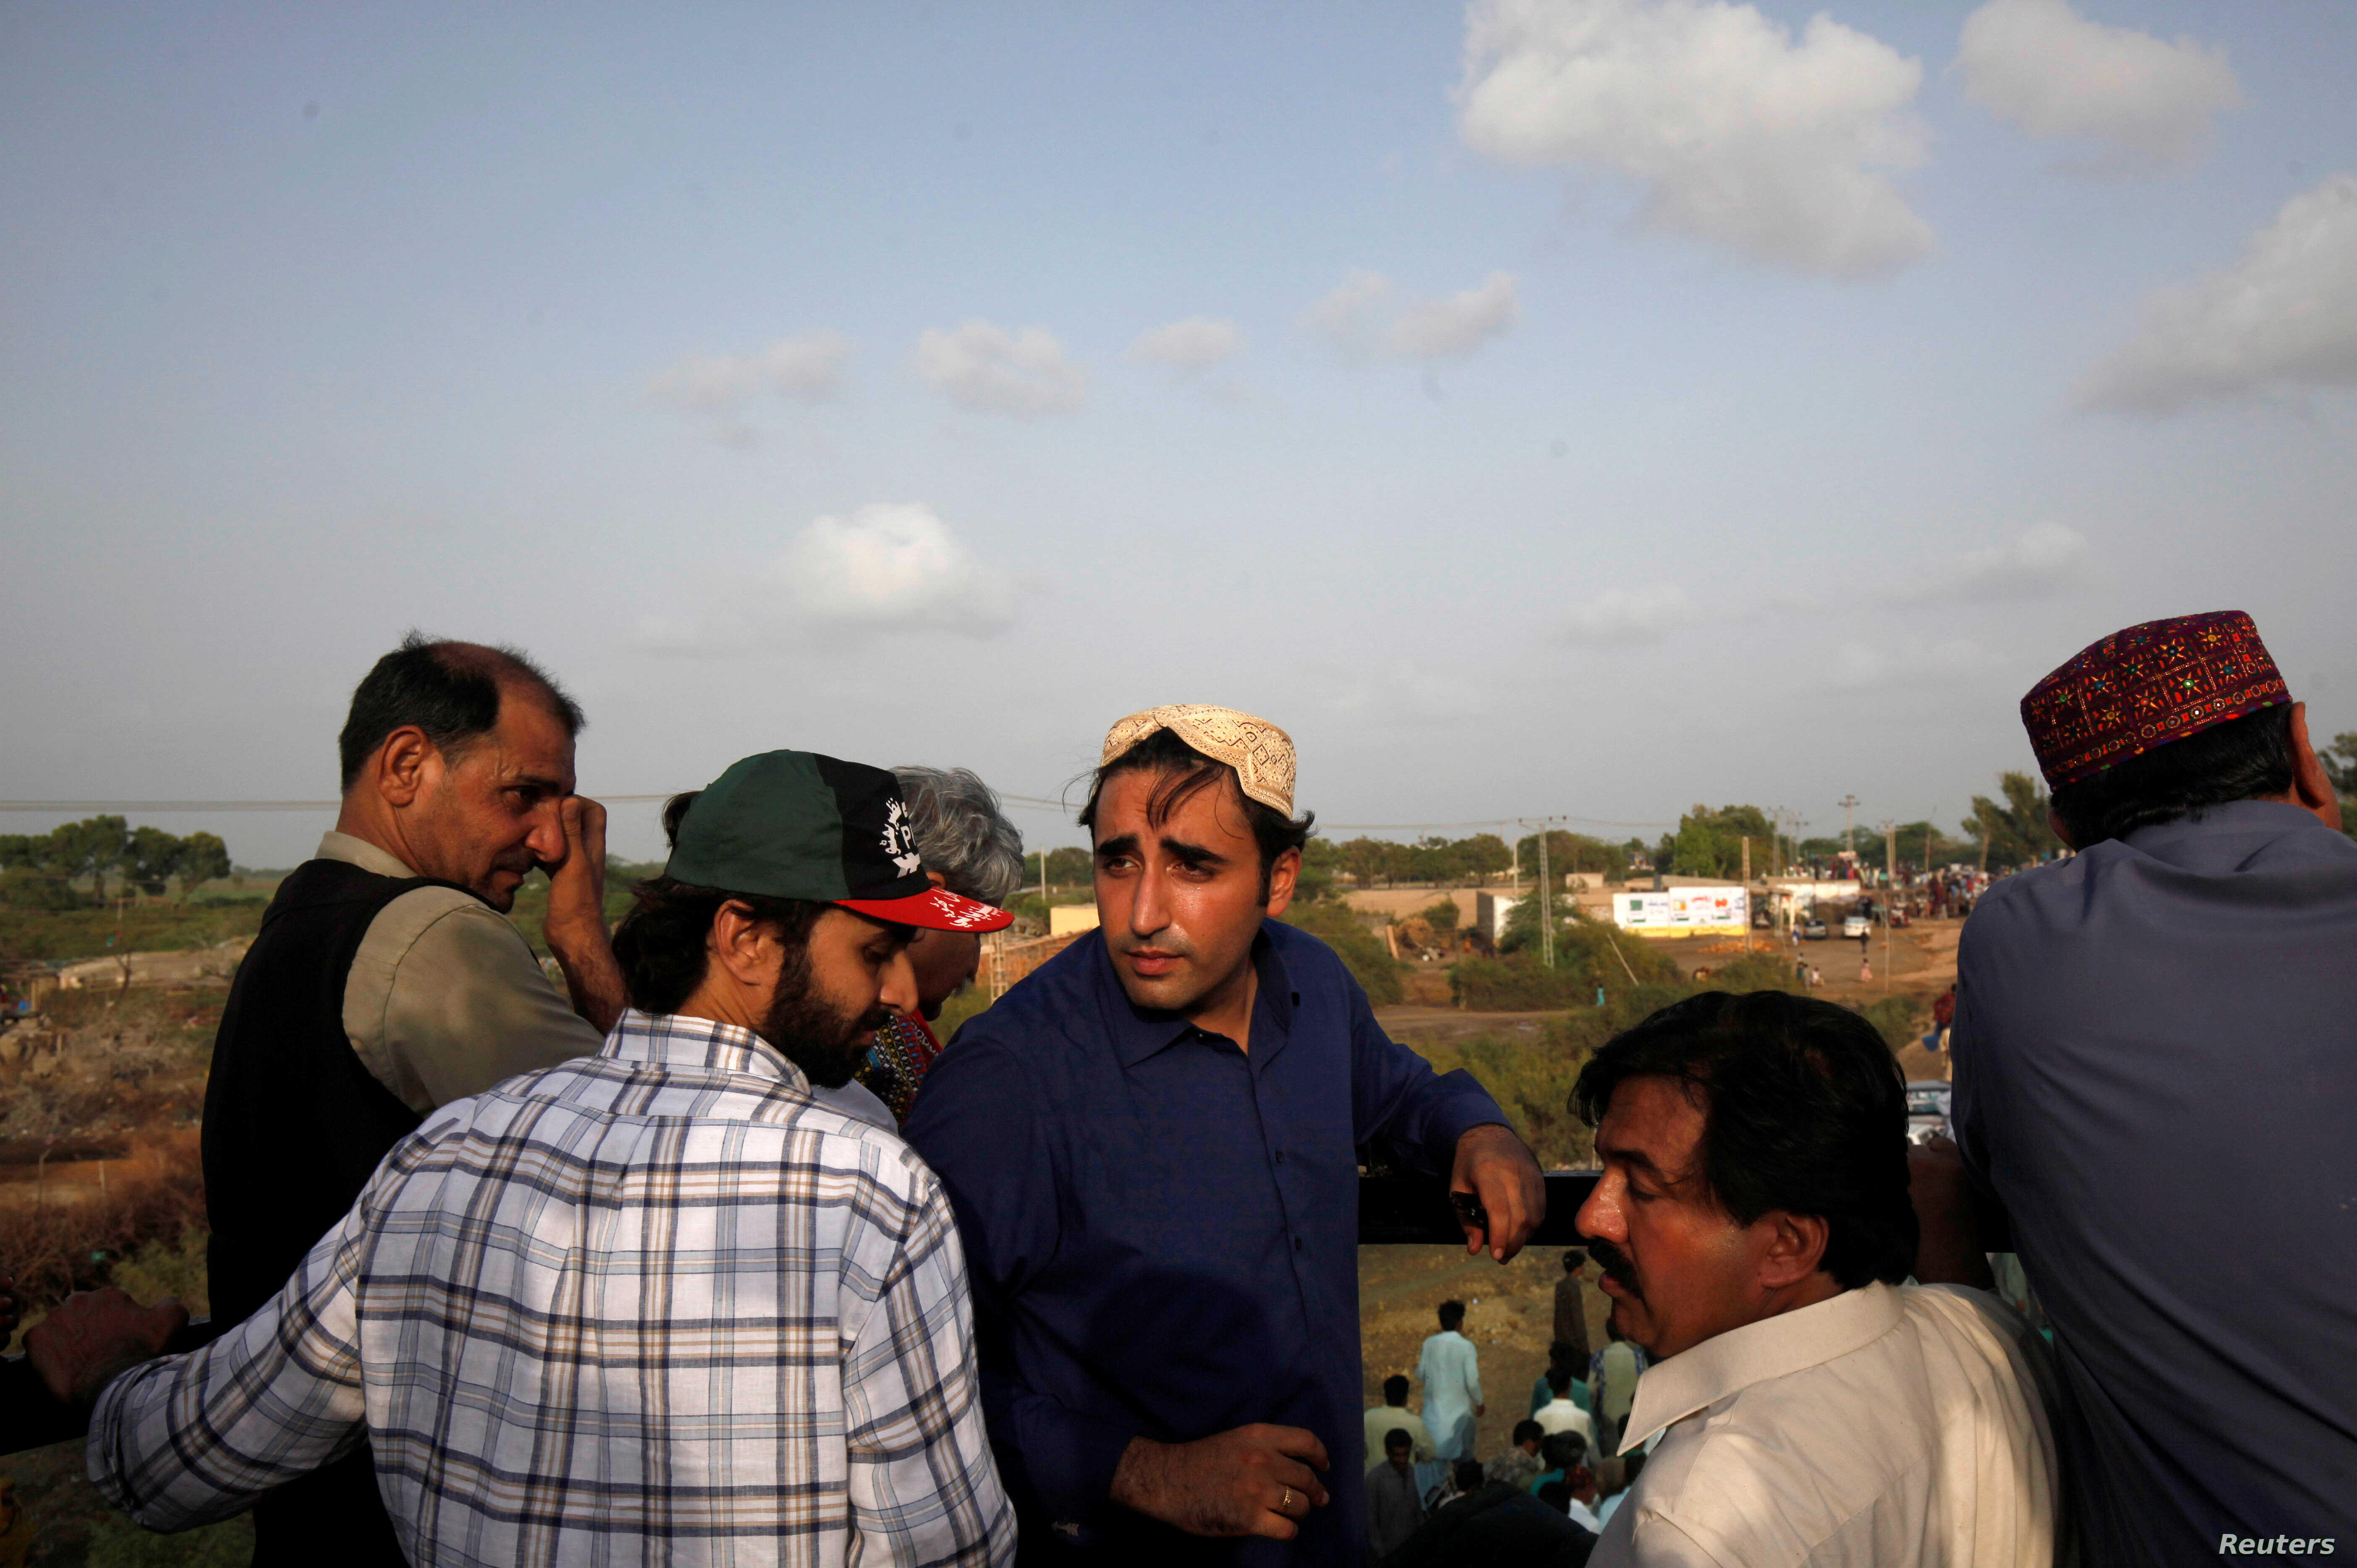 Bhutto Son Campaigns to be Pakistan Prime Minister | Voice